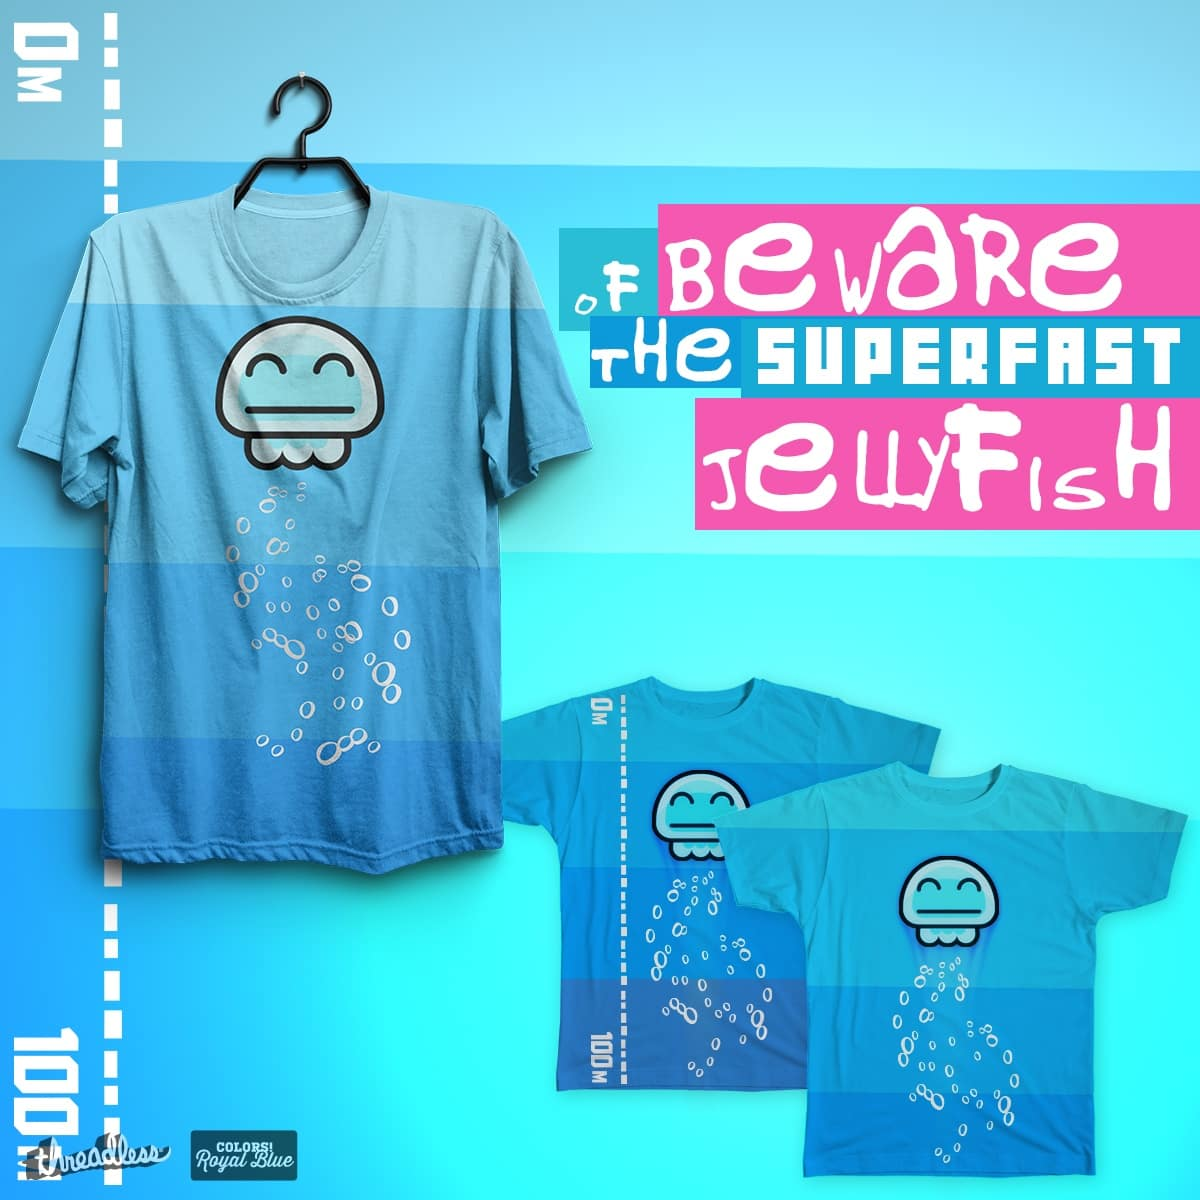 Beware of the Superfast JellyFish by milios.thanasis on Threadless